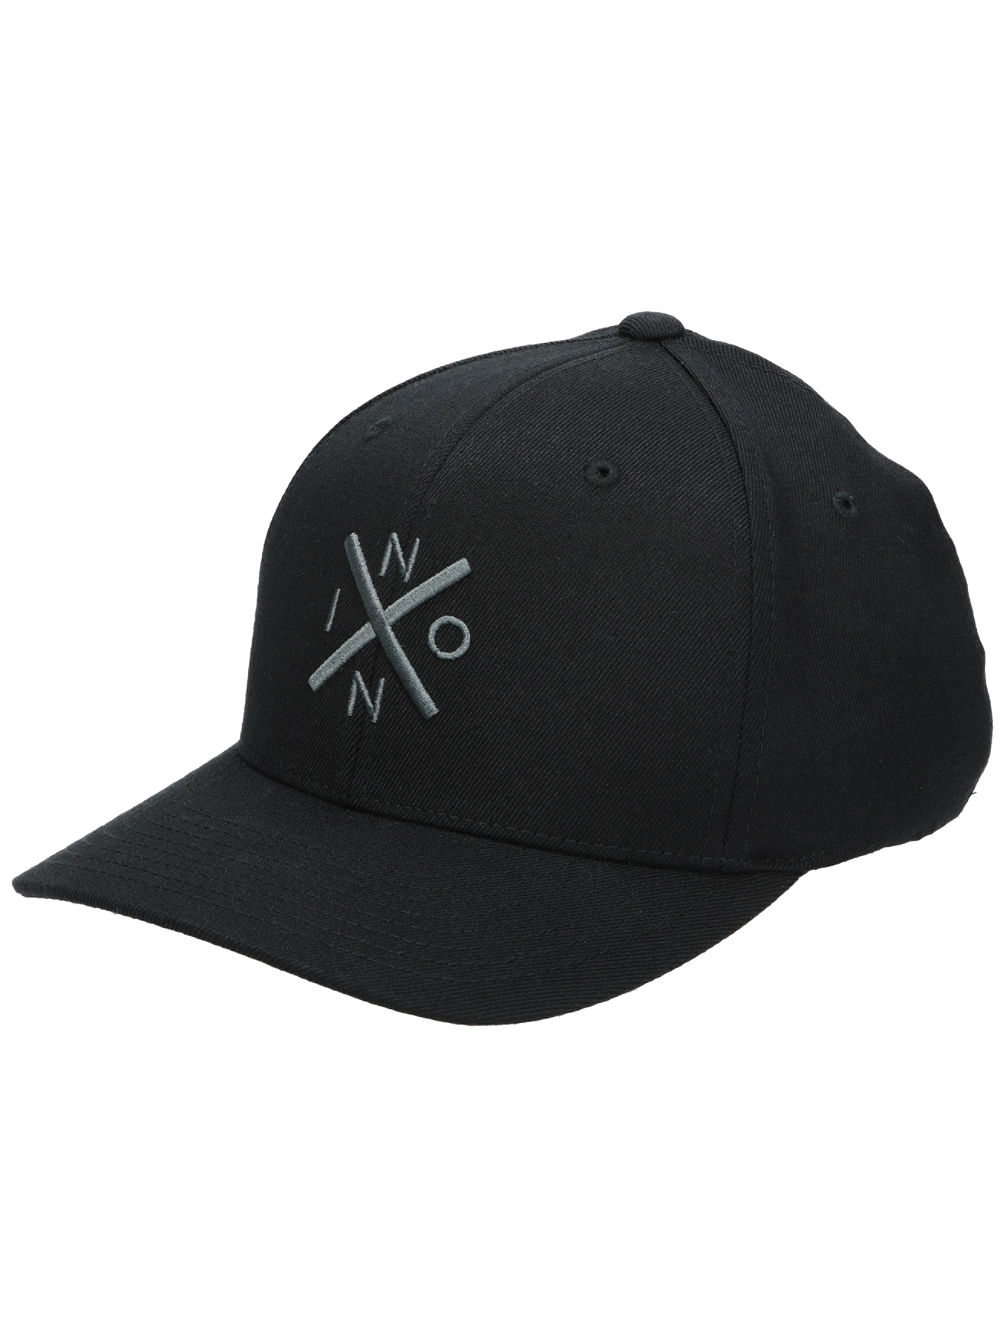 Exchange Flex Fit Cap